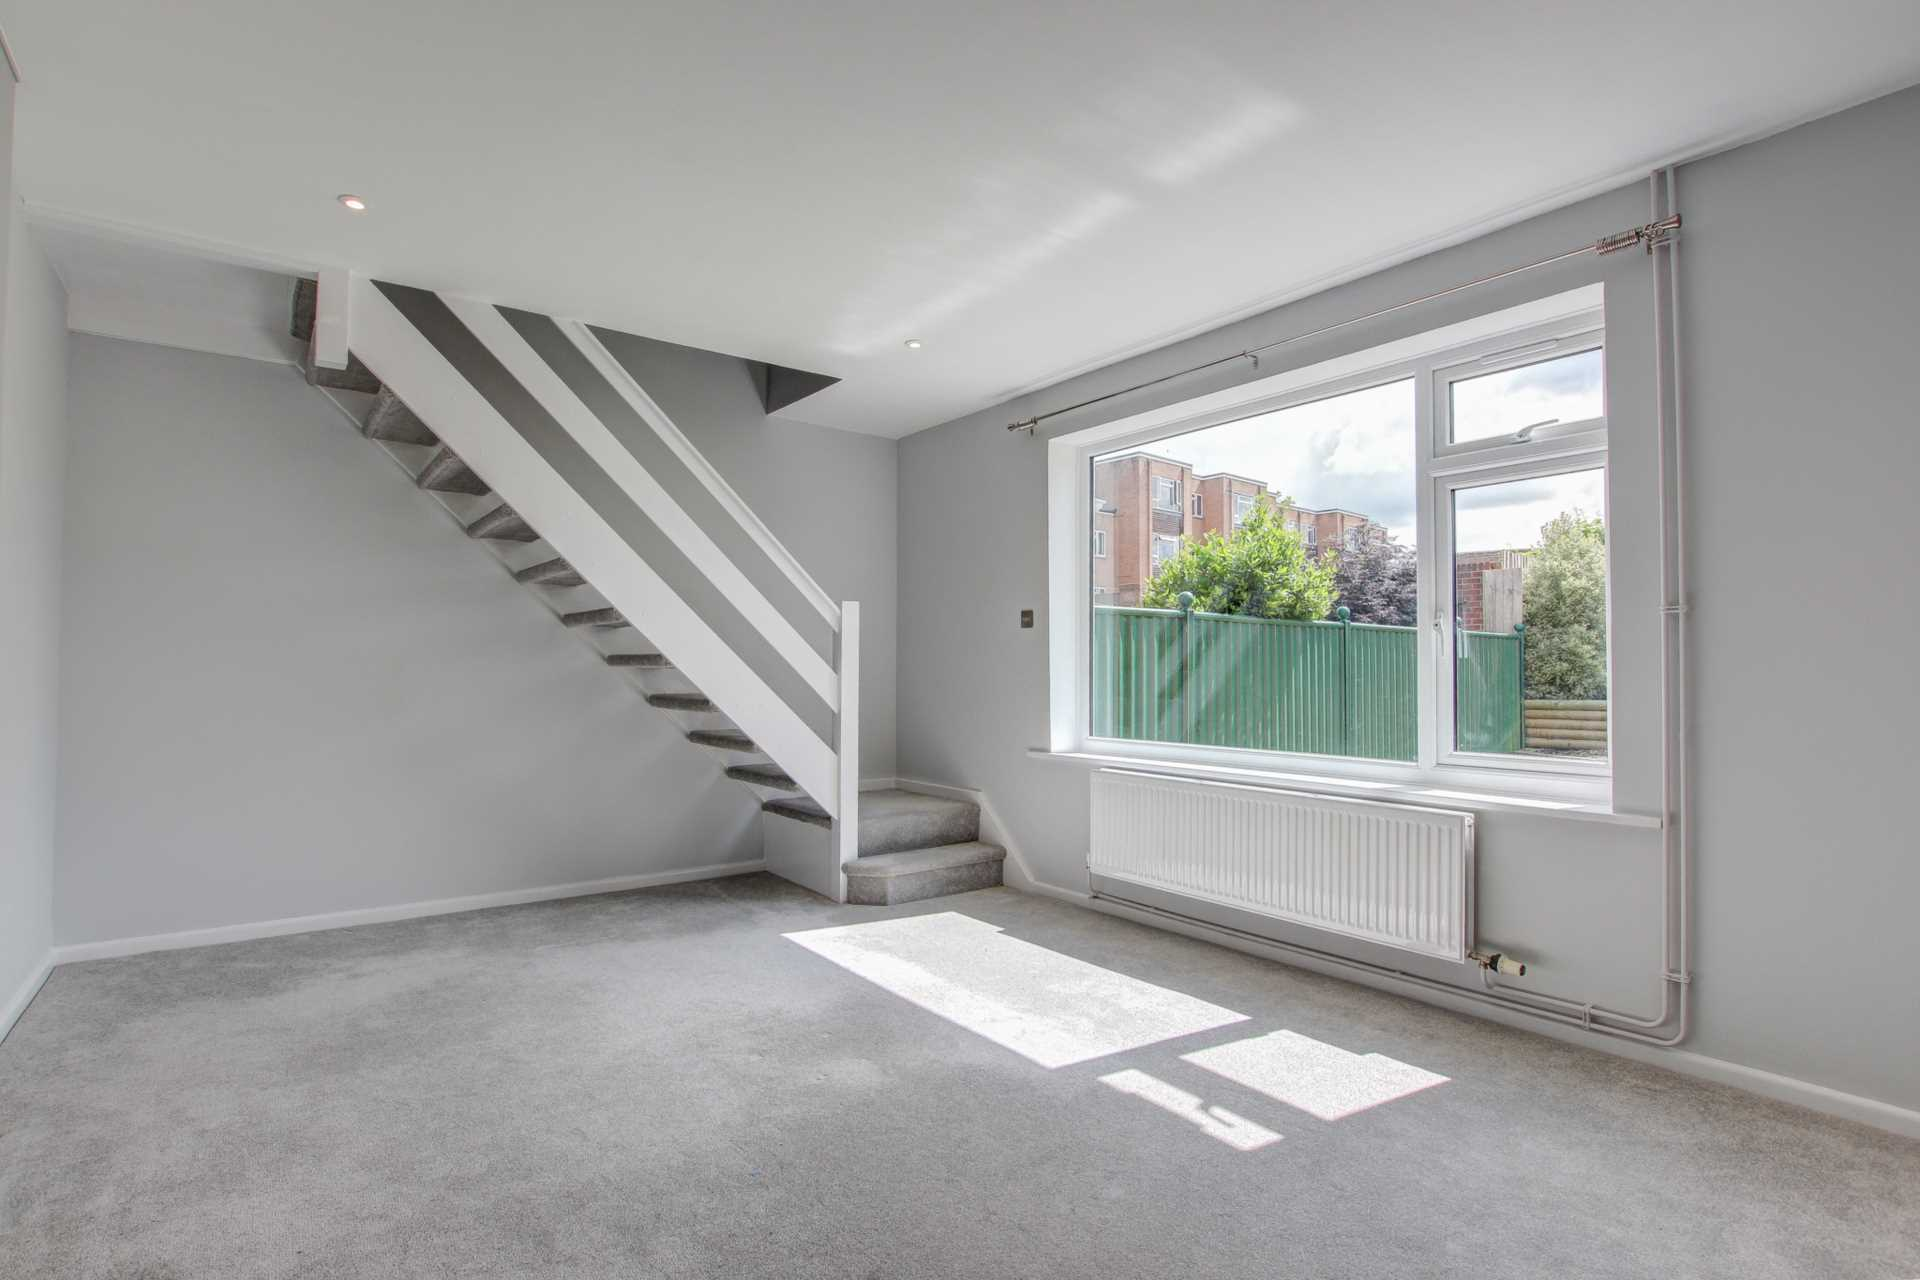 2 bed end of terrace house to rent in Fishers Close, Blandford Forum, Blandford Forum 2